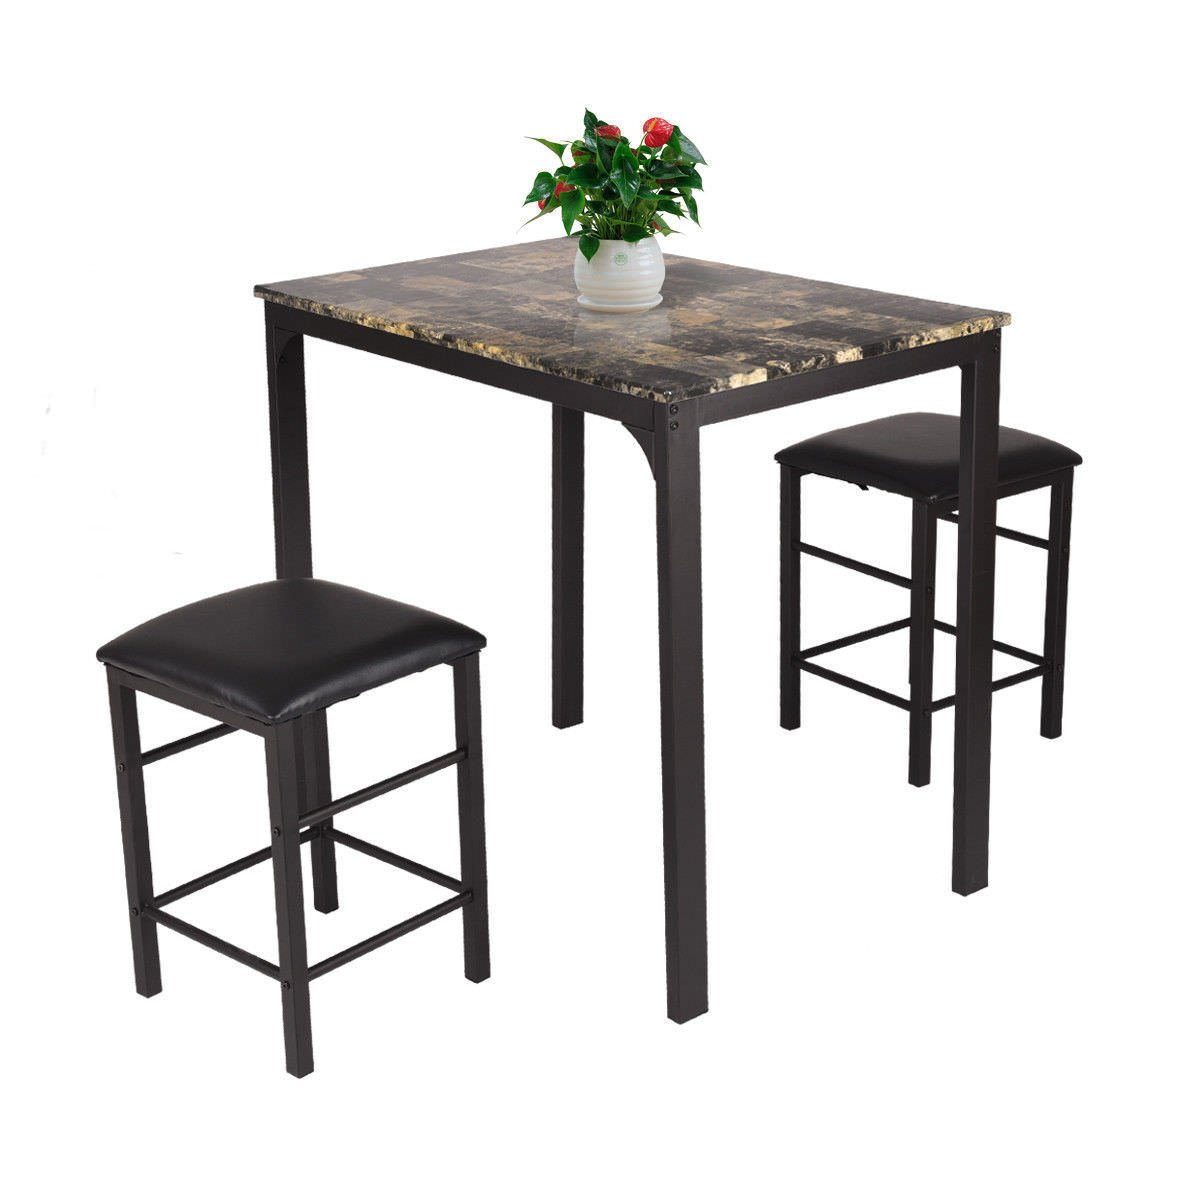 Contemporary 3 PCS Counter Height Dining Set, Faux Marble Table With 2 Cushioned Chairs, Kitchen Bar Furniture, Space Saving, Suitable for Home or Pub, Dark Brown Finish